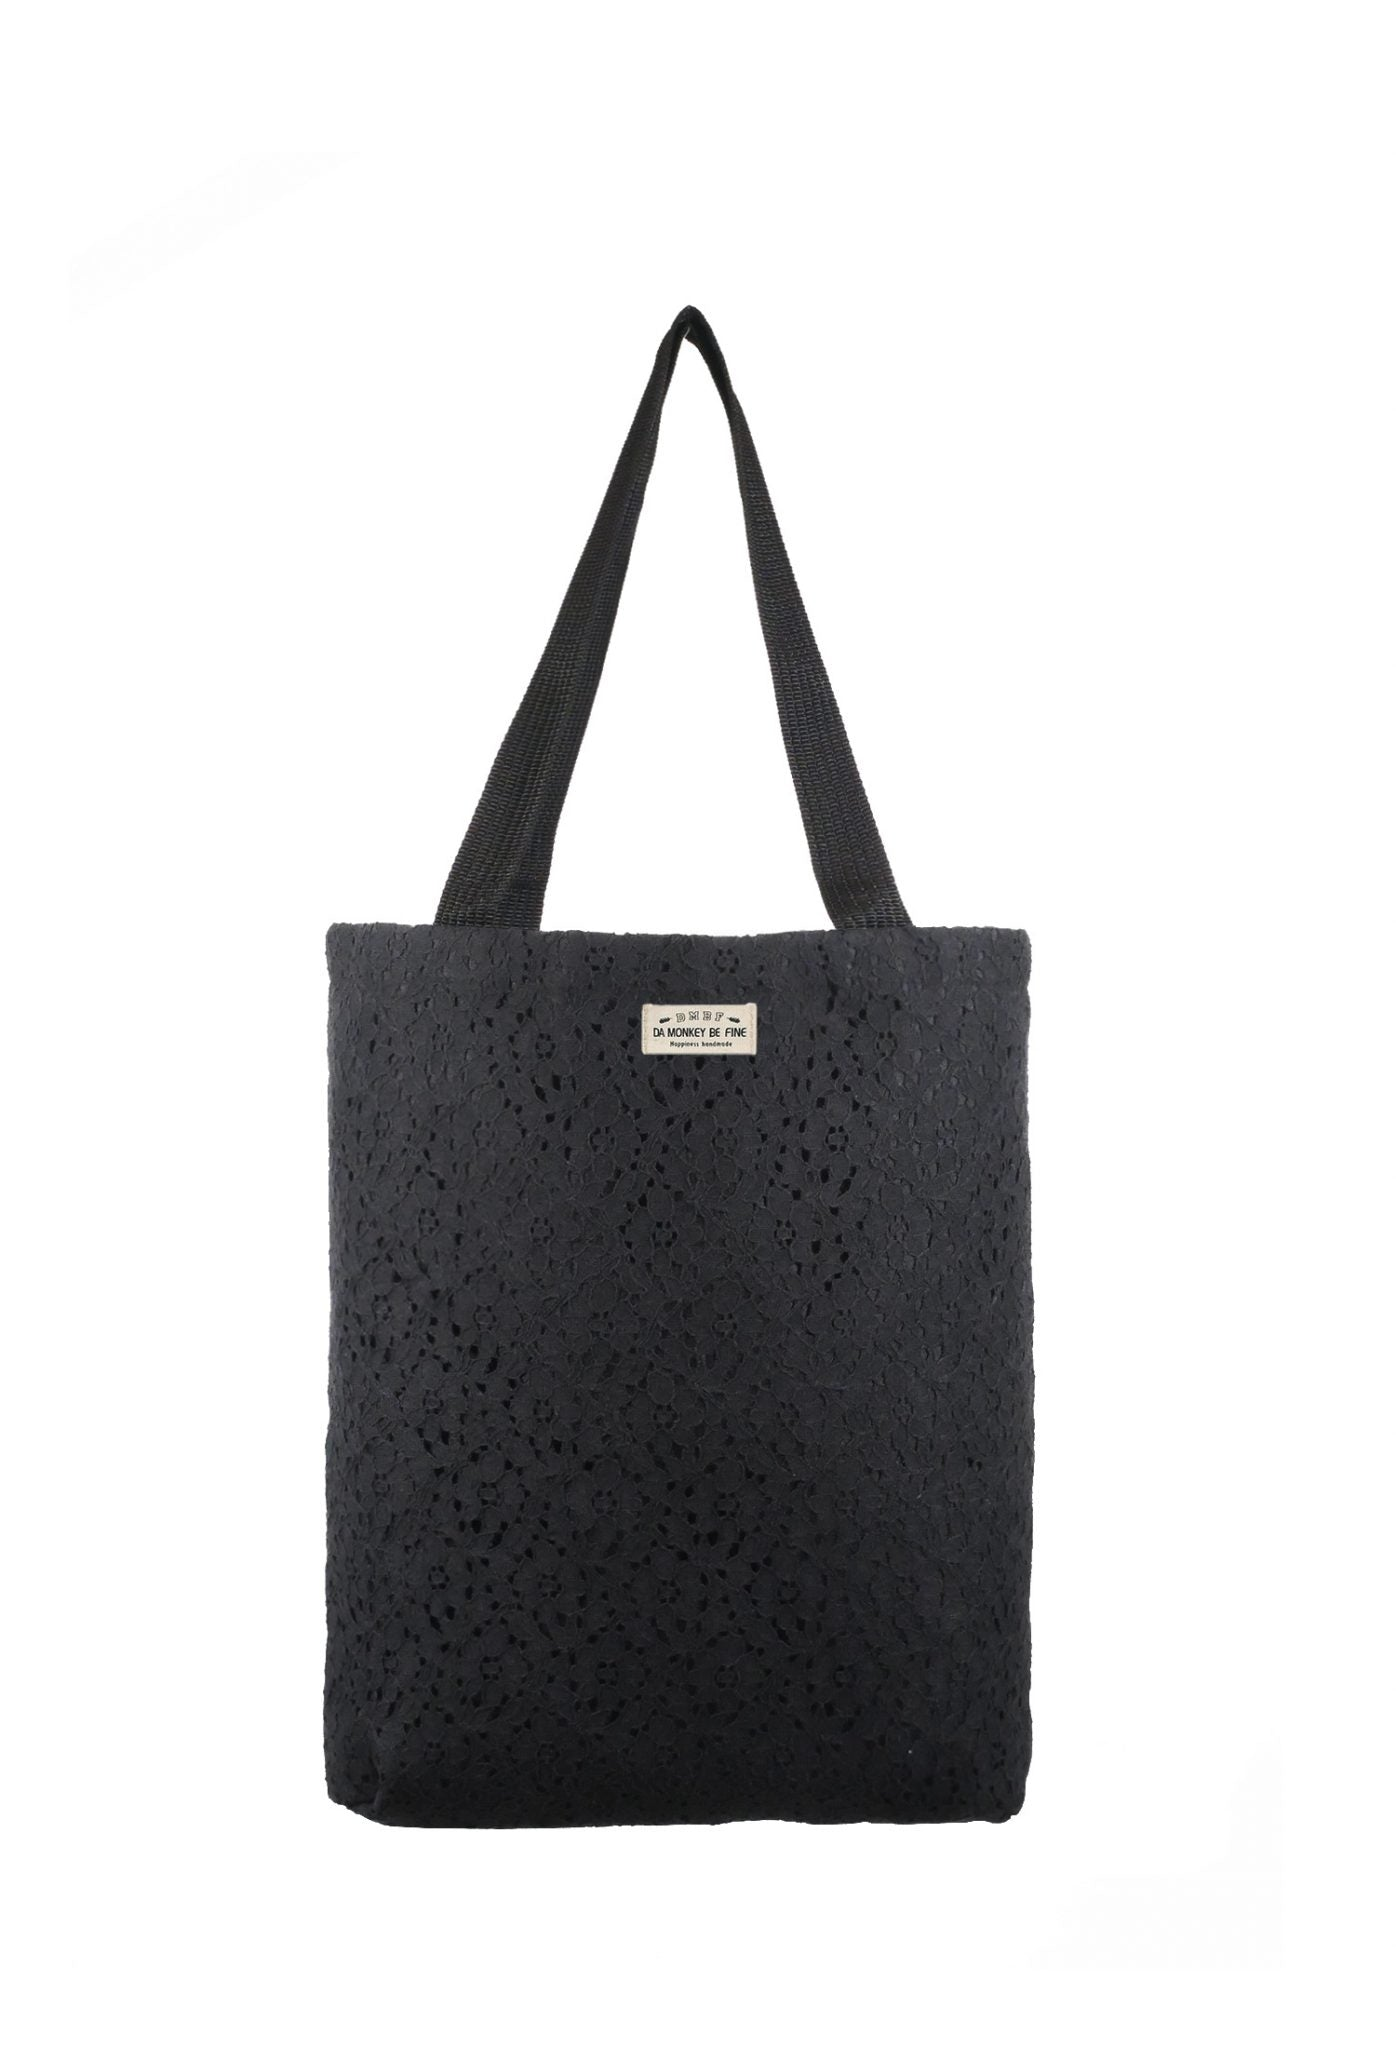 Floral Duo Lace Canvas Tote Bag.花卉波紋蕾絲帆布側背袋